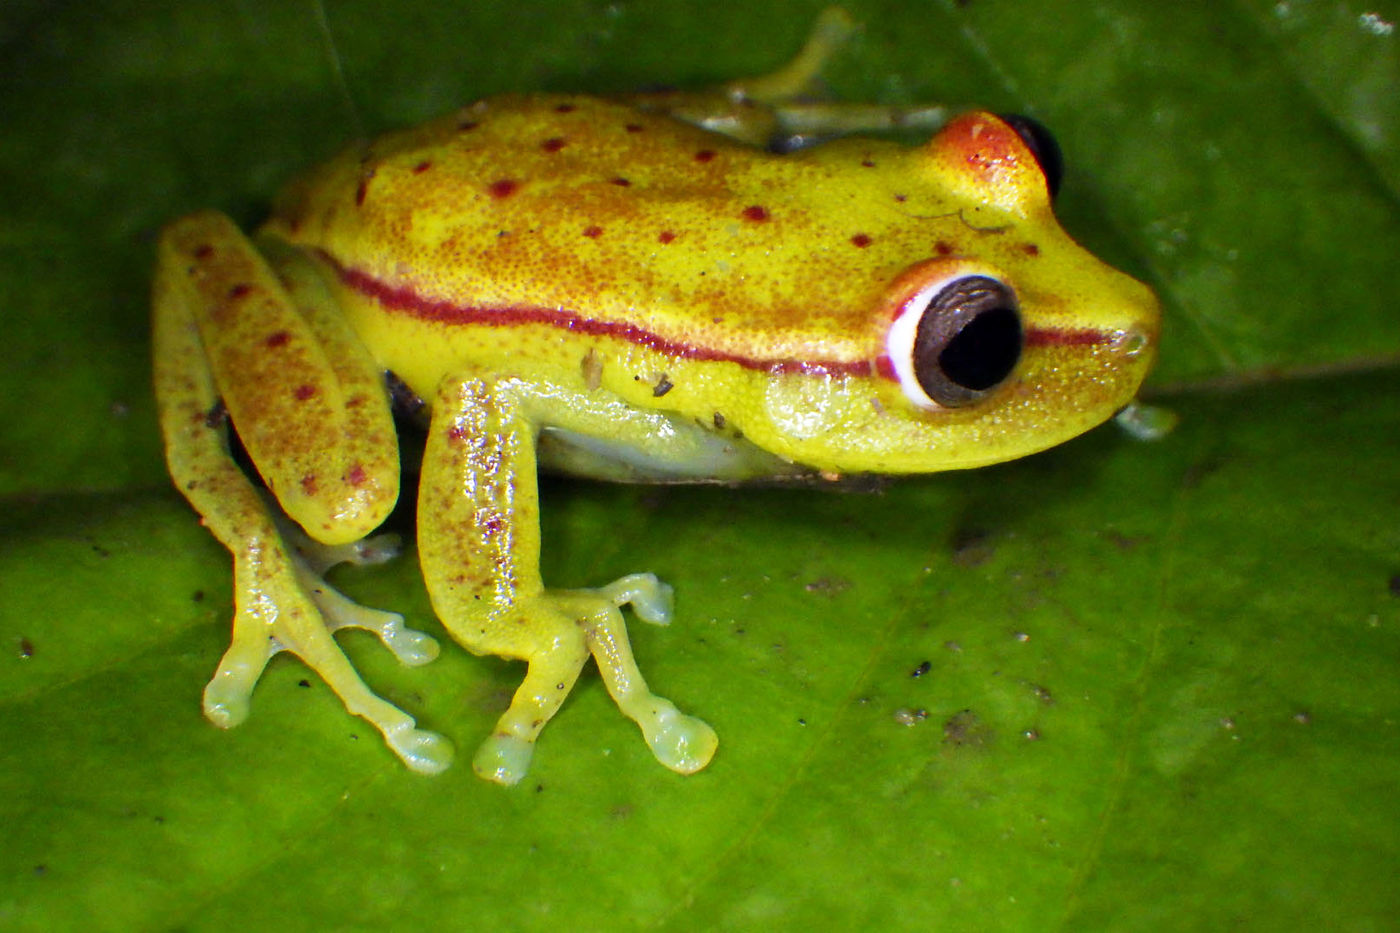 A bright green frog with red stripes down the sides and red polka dots all over, sitting atop a darker green leaf.